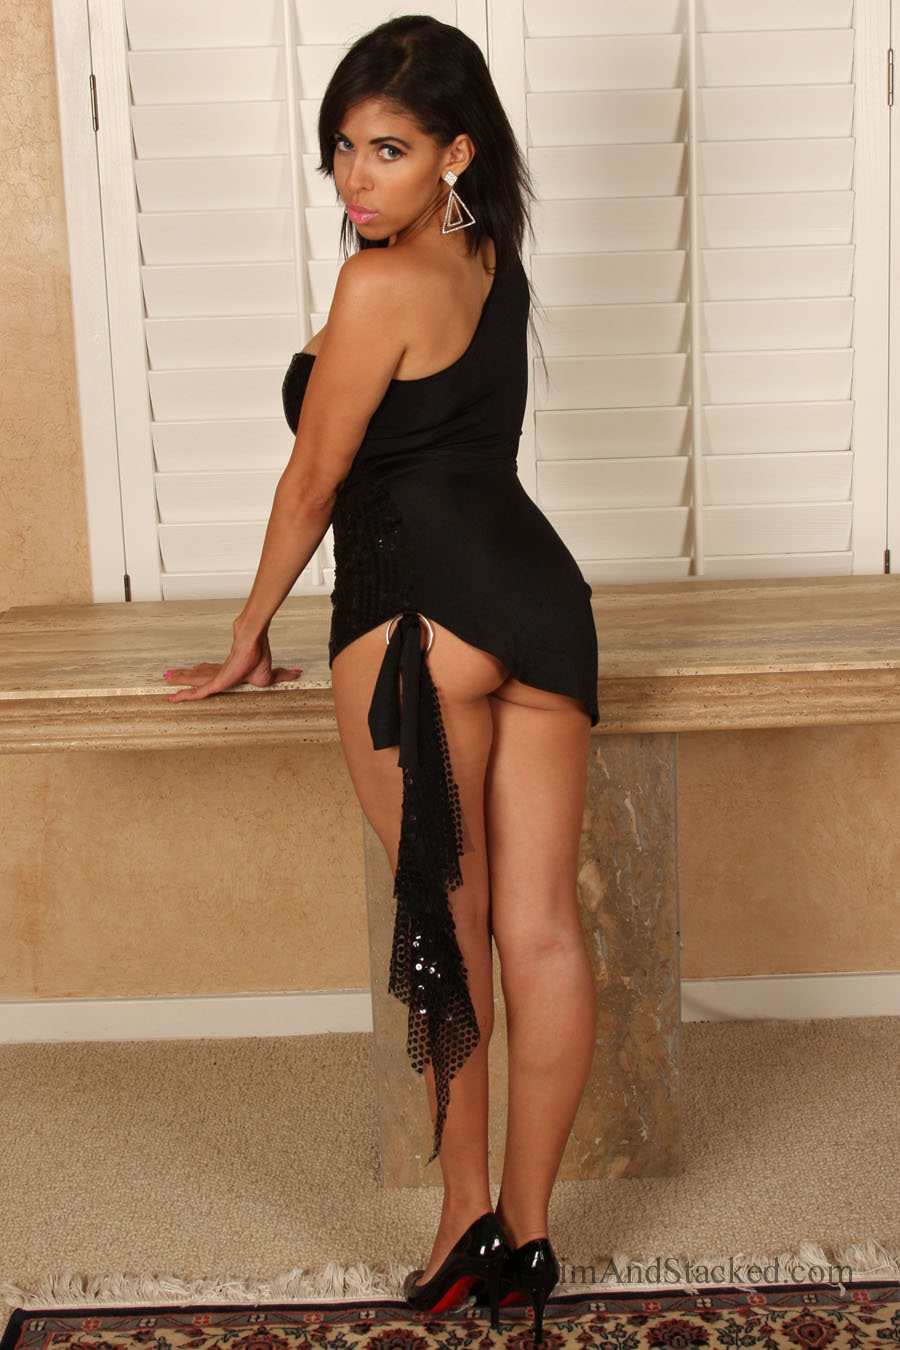 Bianca is super hot in, as well as out of, her sexy black dress.  Get the entire set, in high quality, 3000 pixel resolution.  Contact dezertimagez@gmailcom for pricing.